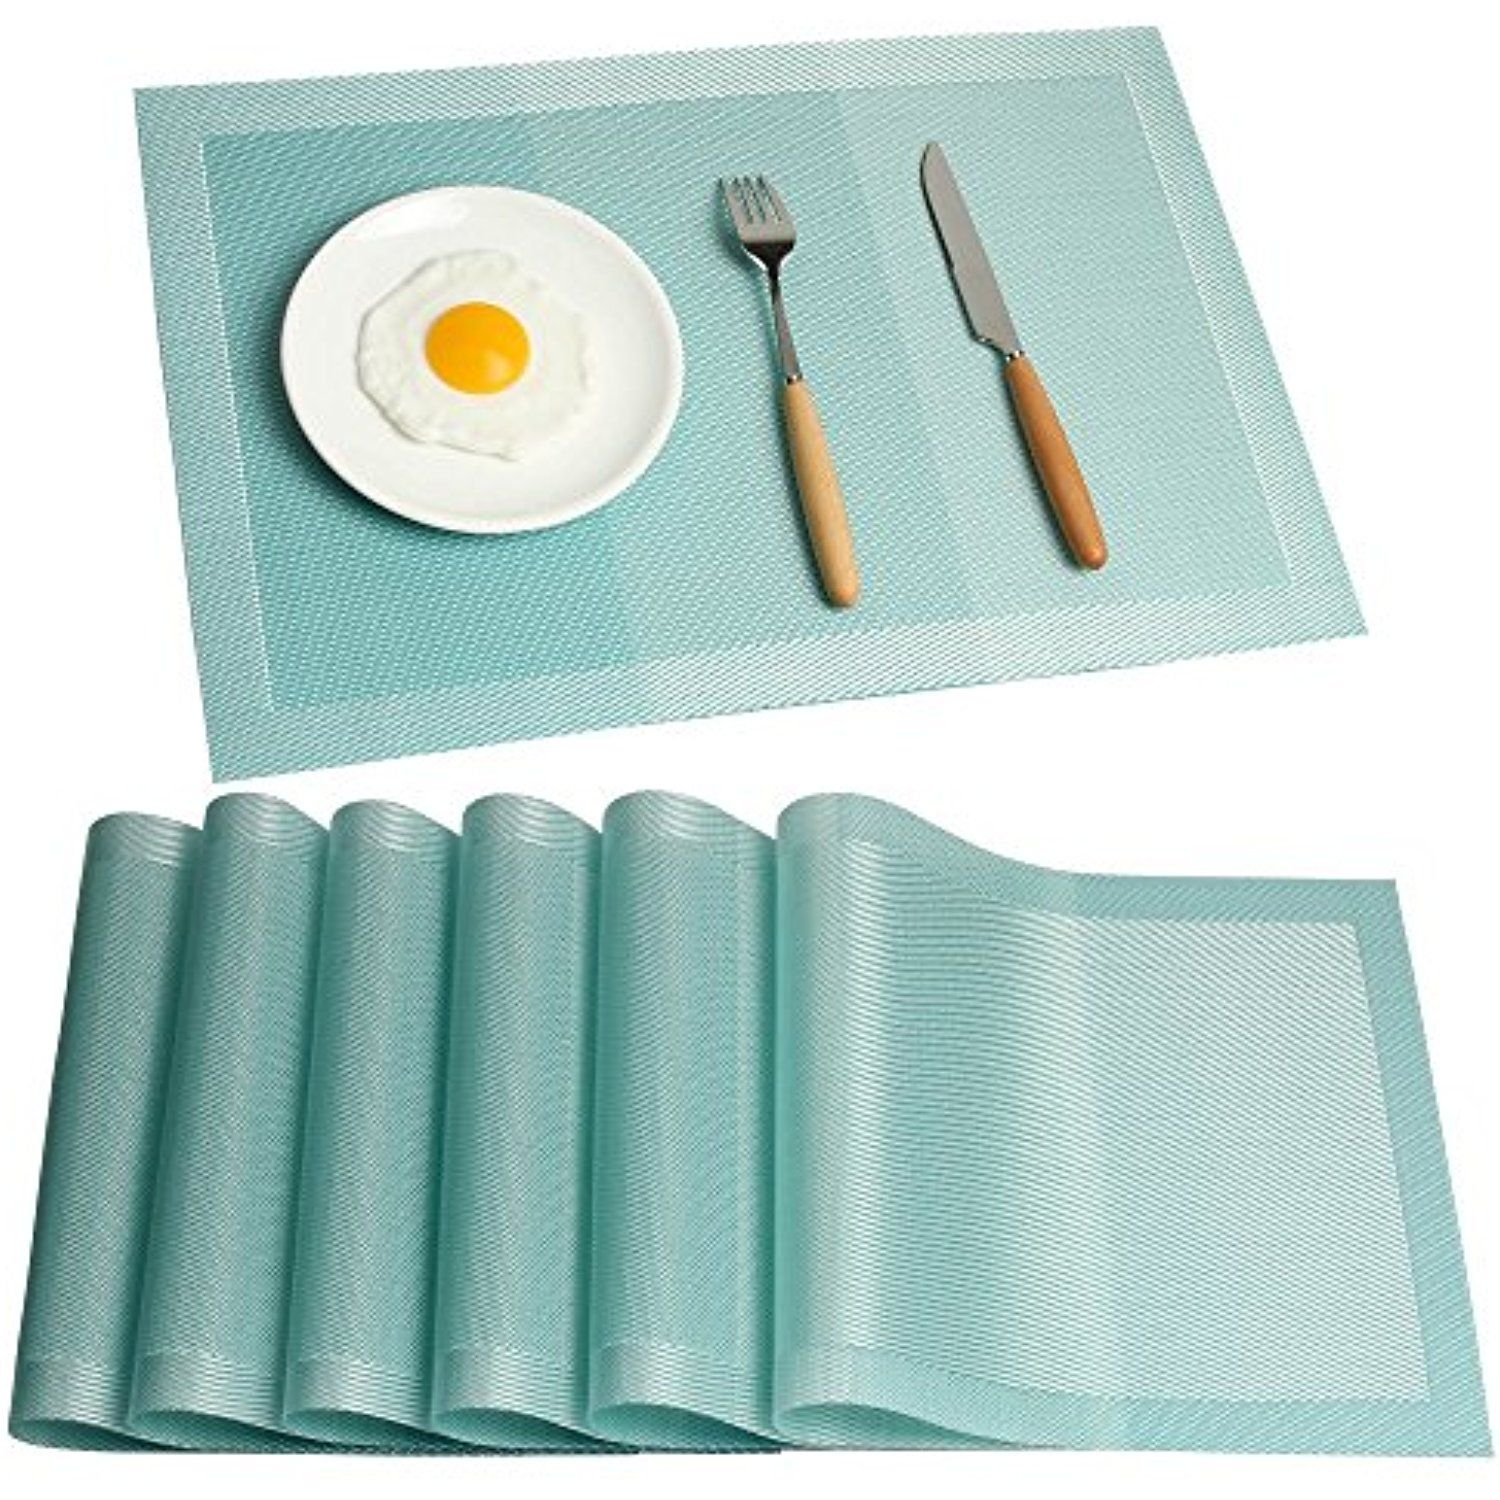 Placemats Ivalue Washable Fabric Placemats Set of